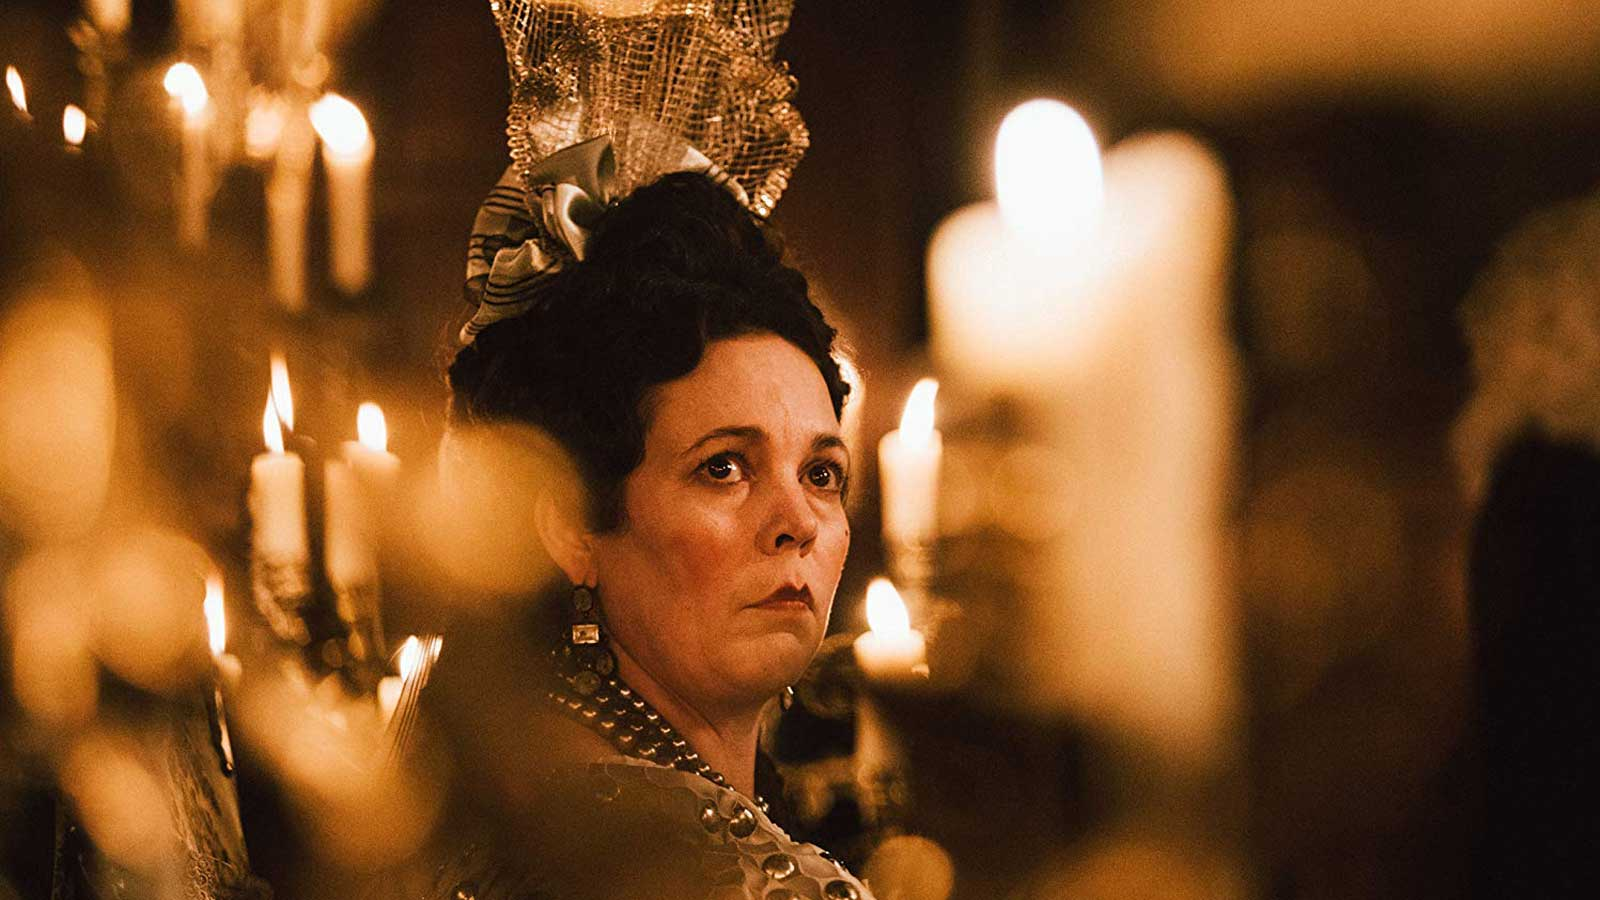 The Favourite Review - OC Movie Reviews - Movie Reviews, Movie News, Documentary Reviews, Short Films, Short Film Reviews, Trailers, Movie Trailers, Interviews, film reviews, film news, hollywood, indie films, documentaries, TV shows